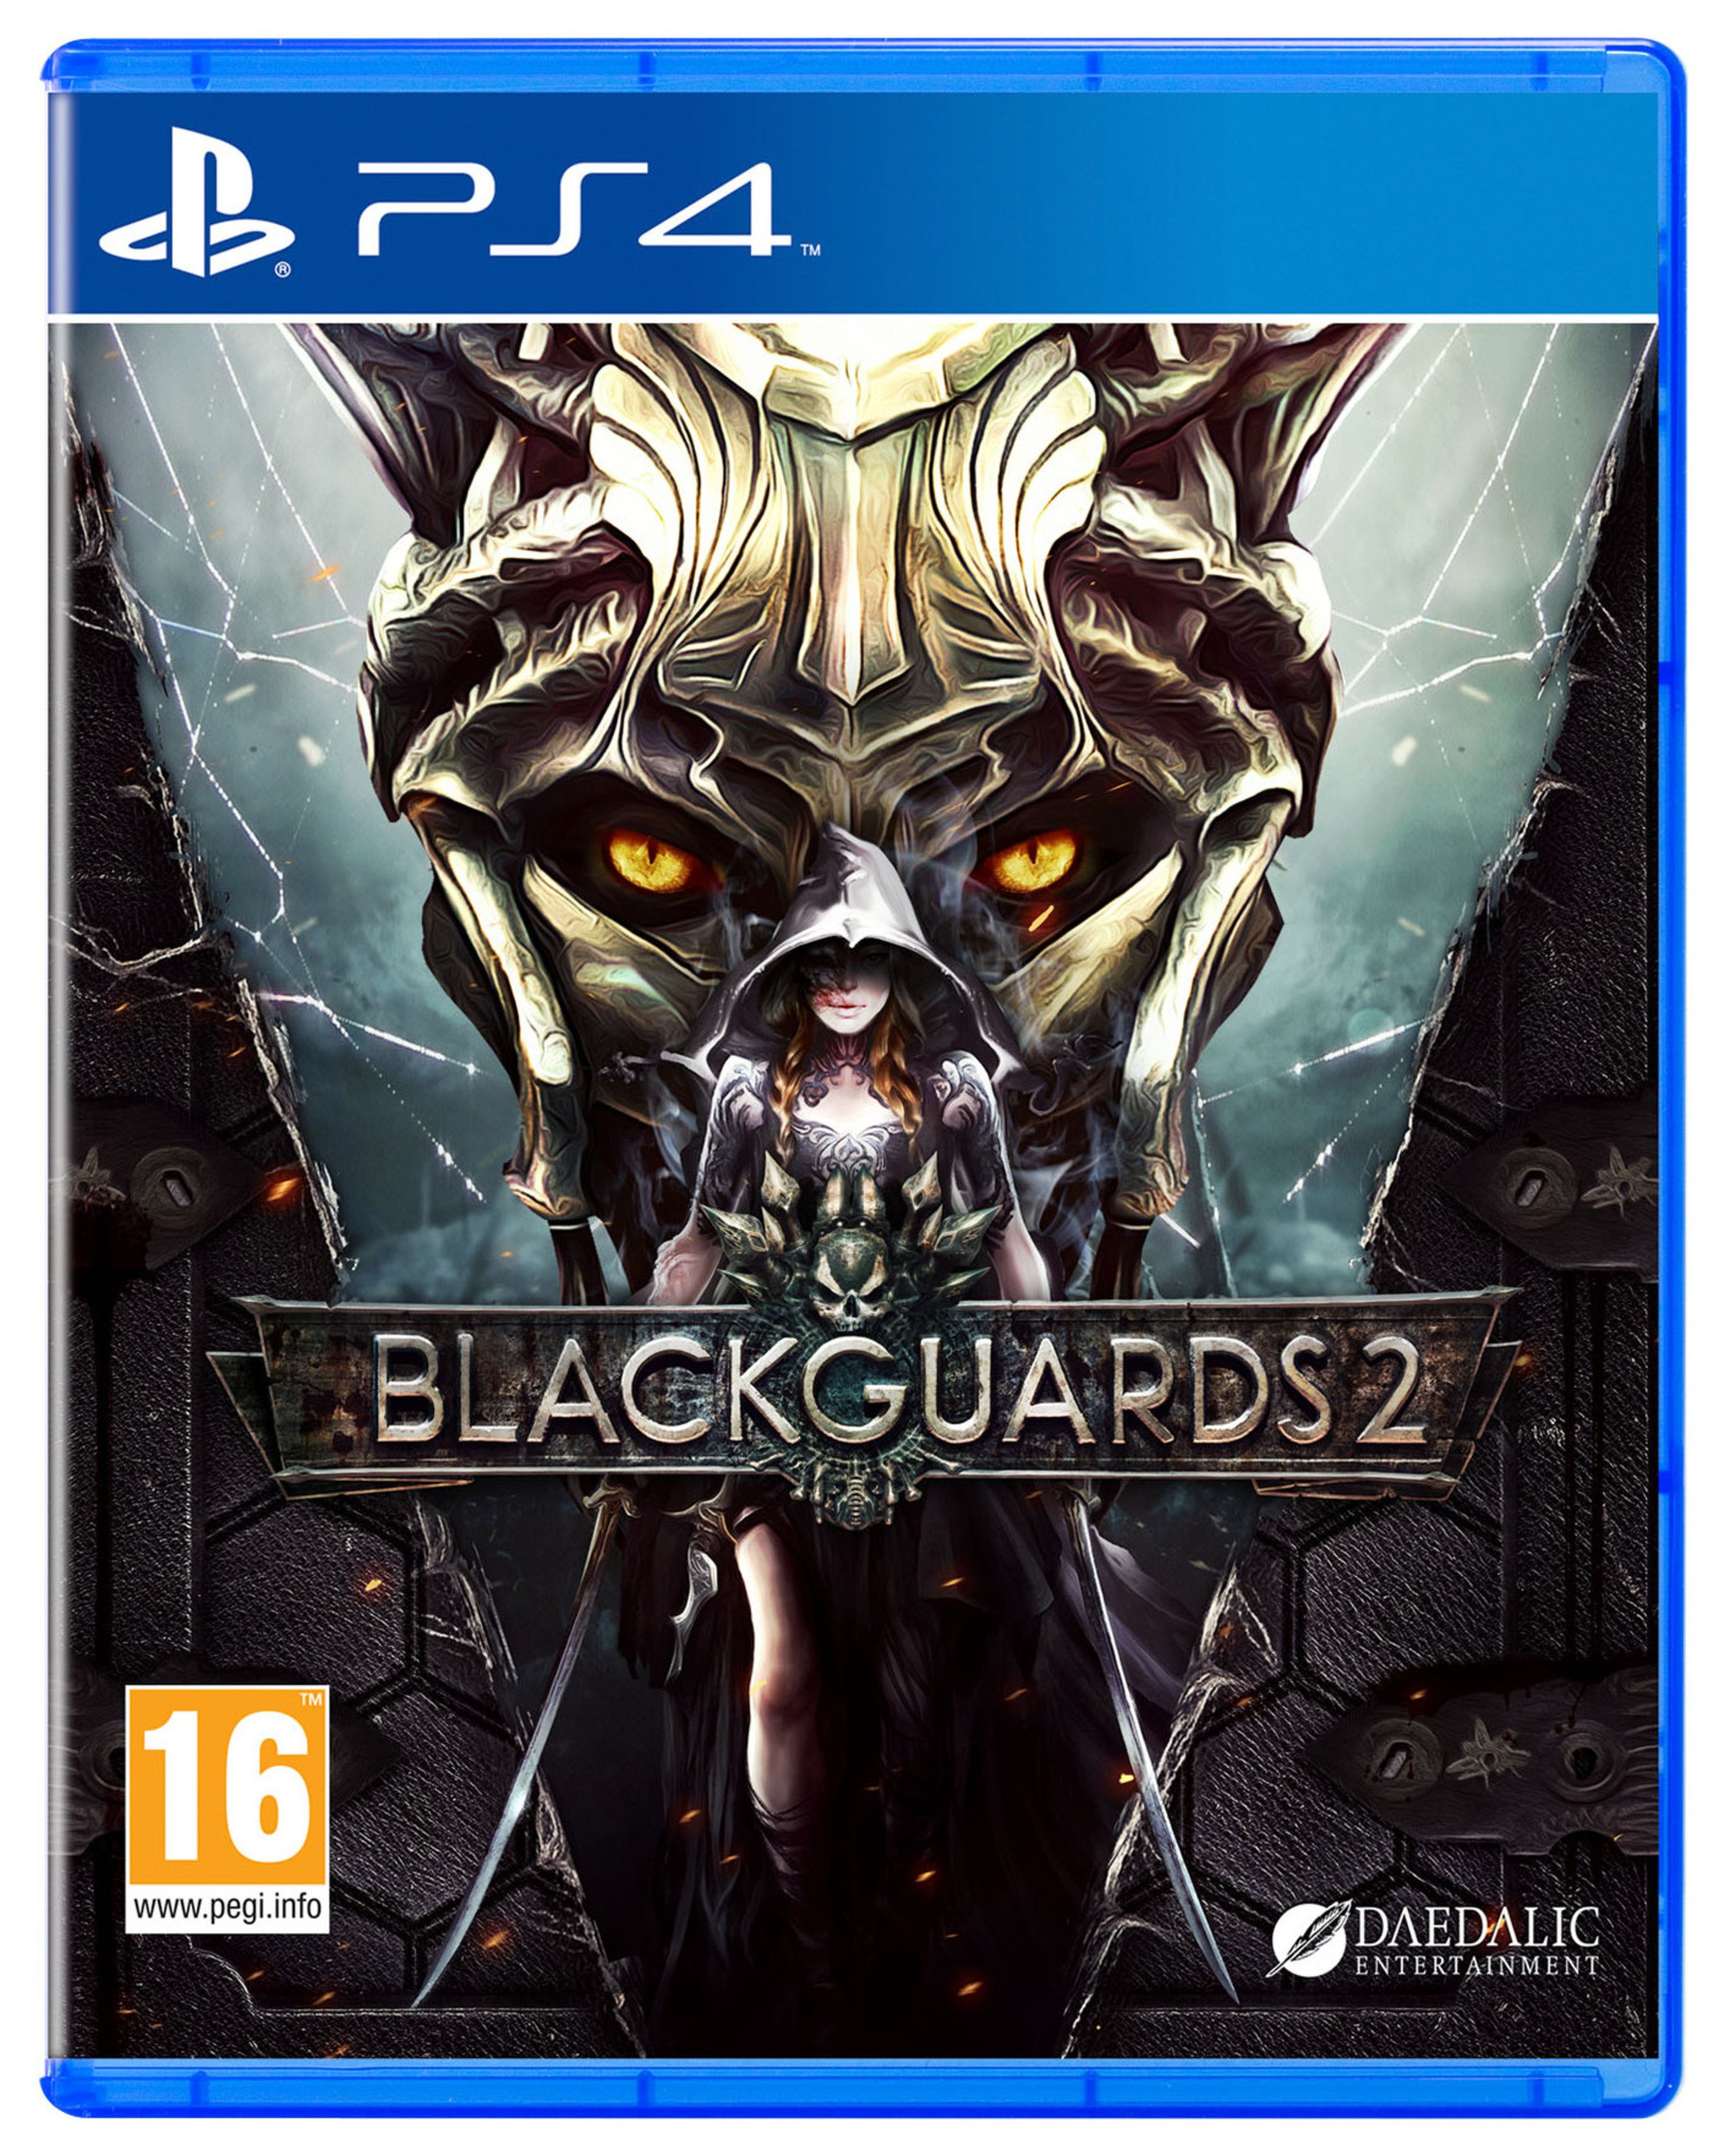 Blackguards 2 PS4 Game